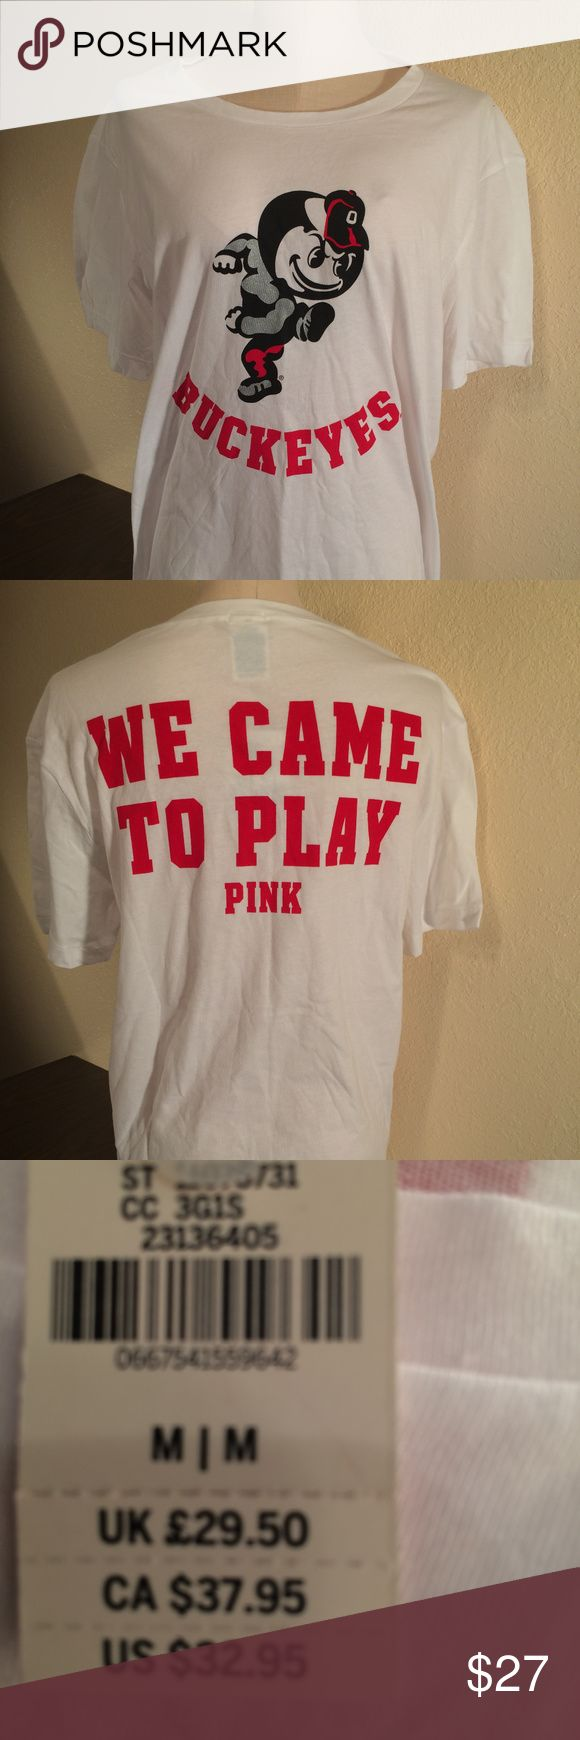 """Victoria's Secret PINK White Ohio State T-Shirt Victoria's Secret PINK White Ohio State Buckeye Nation Collegiate T-Shirt - NWT Size: Medium Show your PINK love for your college in style! It's super comfy with 100% cotton material and short sleeves. It's finished with Brutus and """"Buckeyes"""" on the front and """"We Came To Play"""" and the PINK logo on the back. 0667541559642 PINK Victoria's Secret Tops Tees - Short Sleeve"""